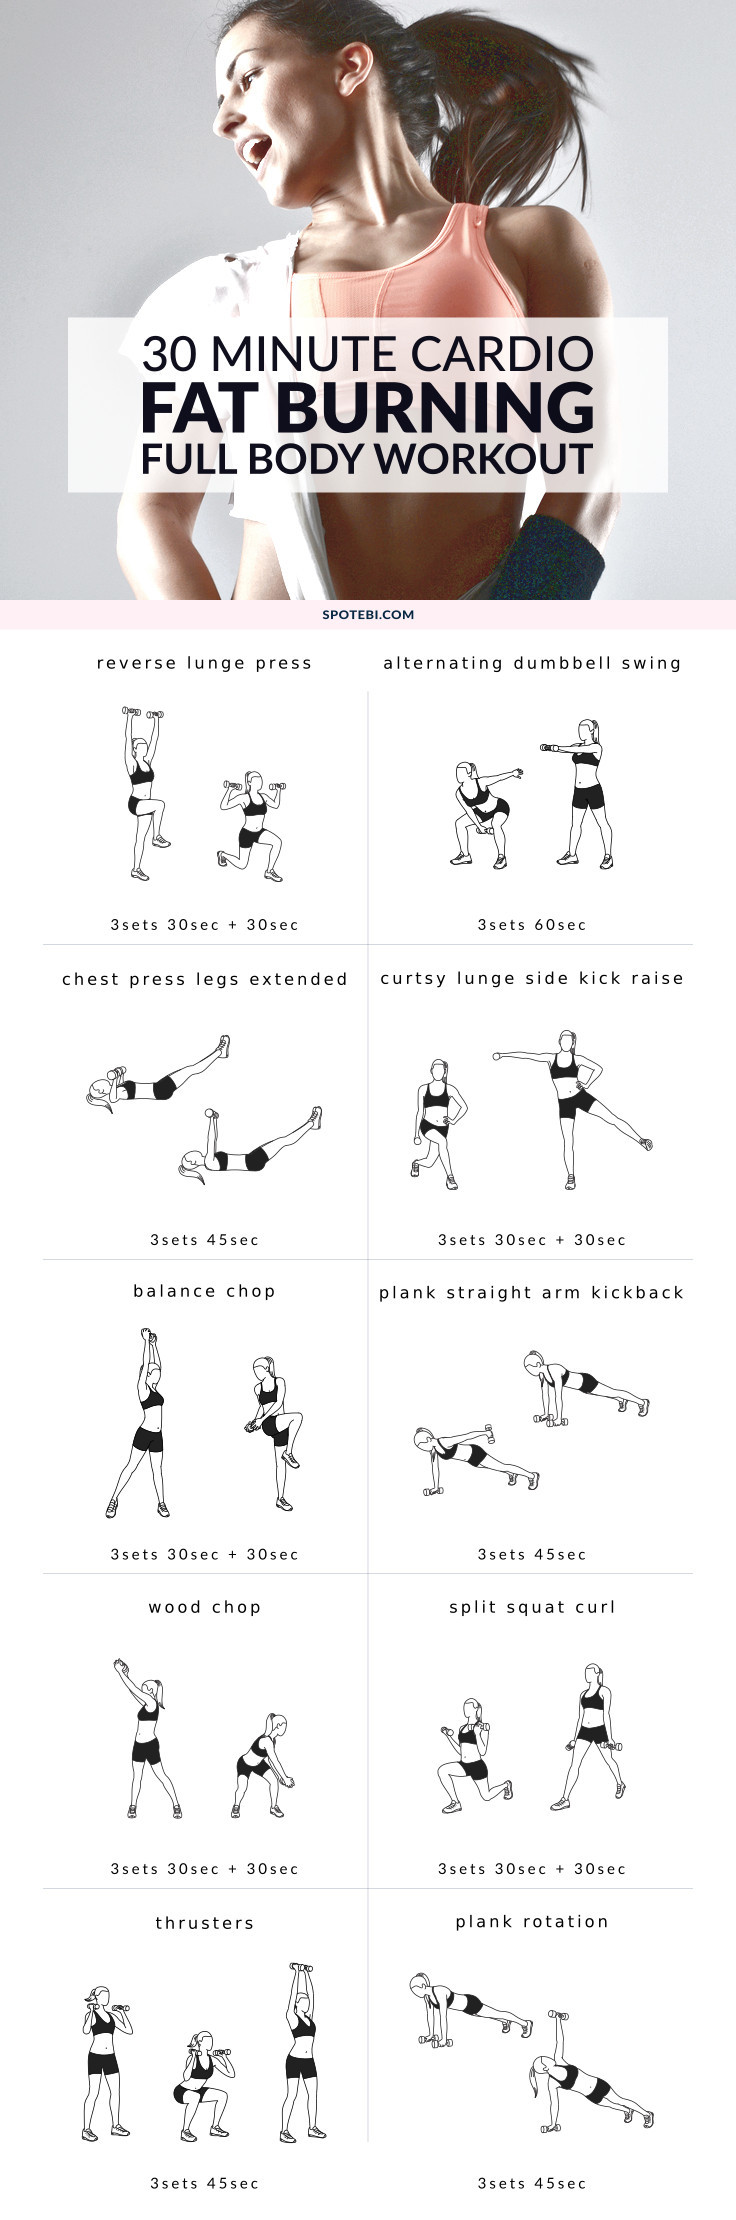 30 Minute Fat Burning Workout  30 Minute Full Body Fat Burning Workout